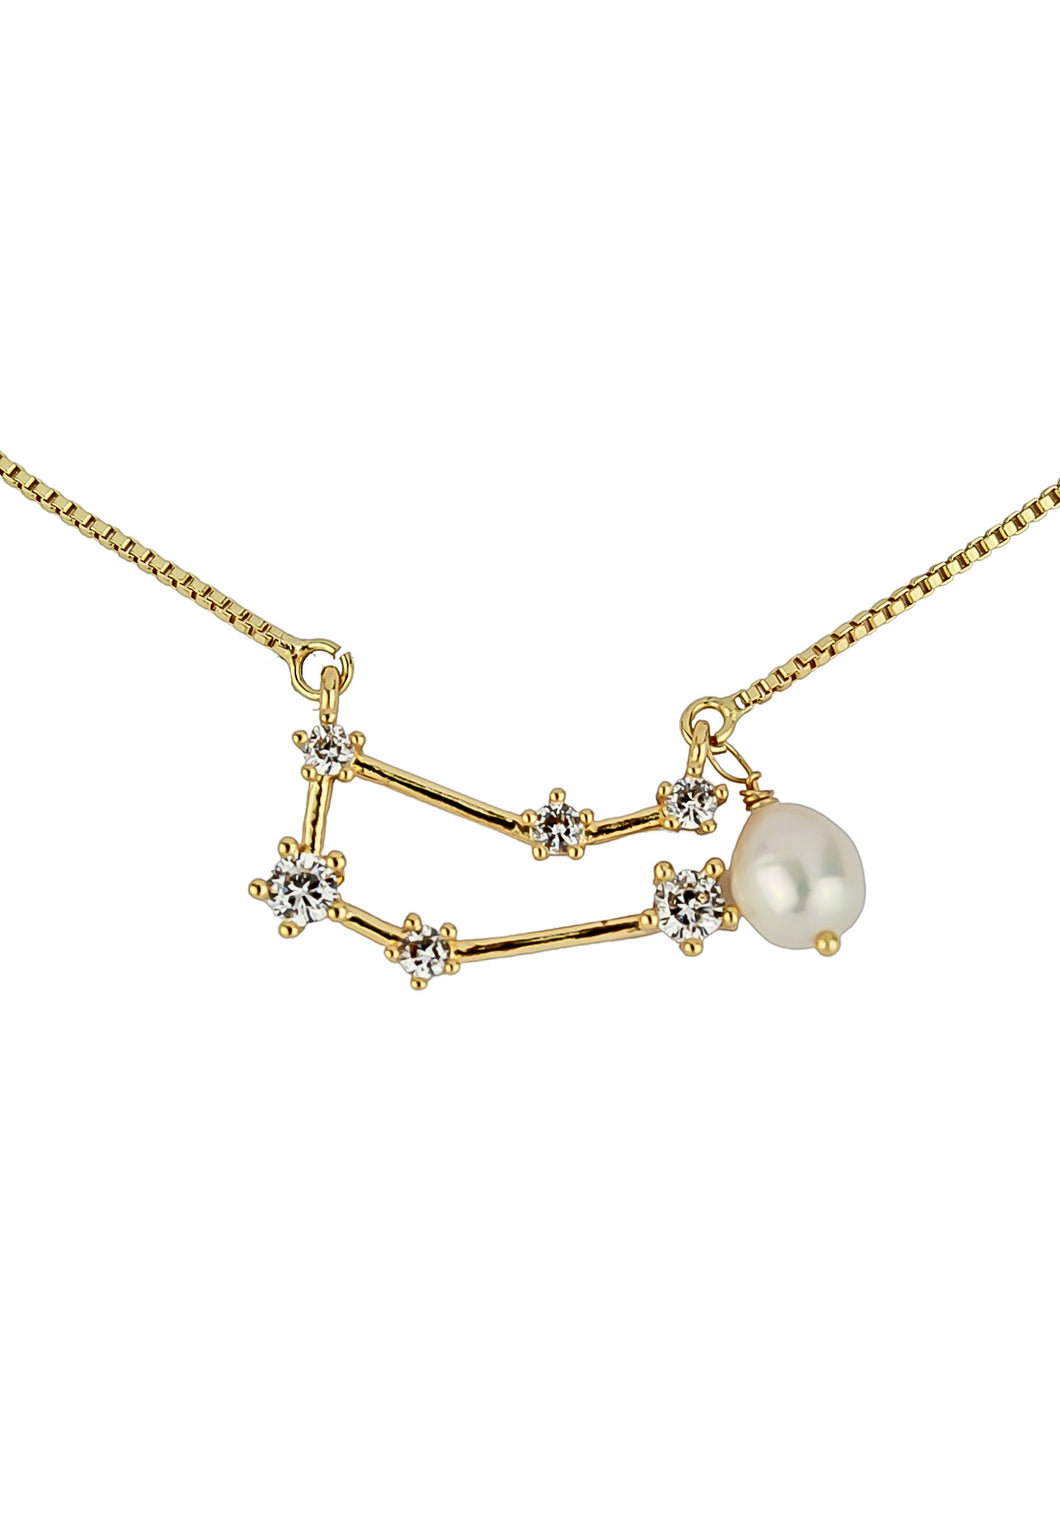 Gemini Necklace with Pearl